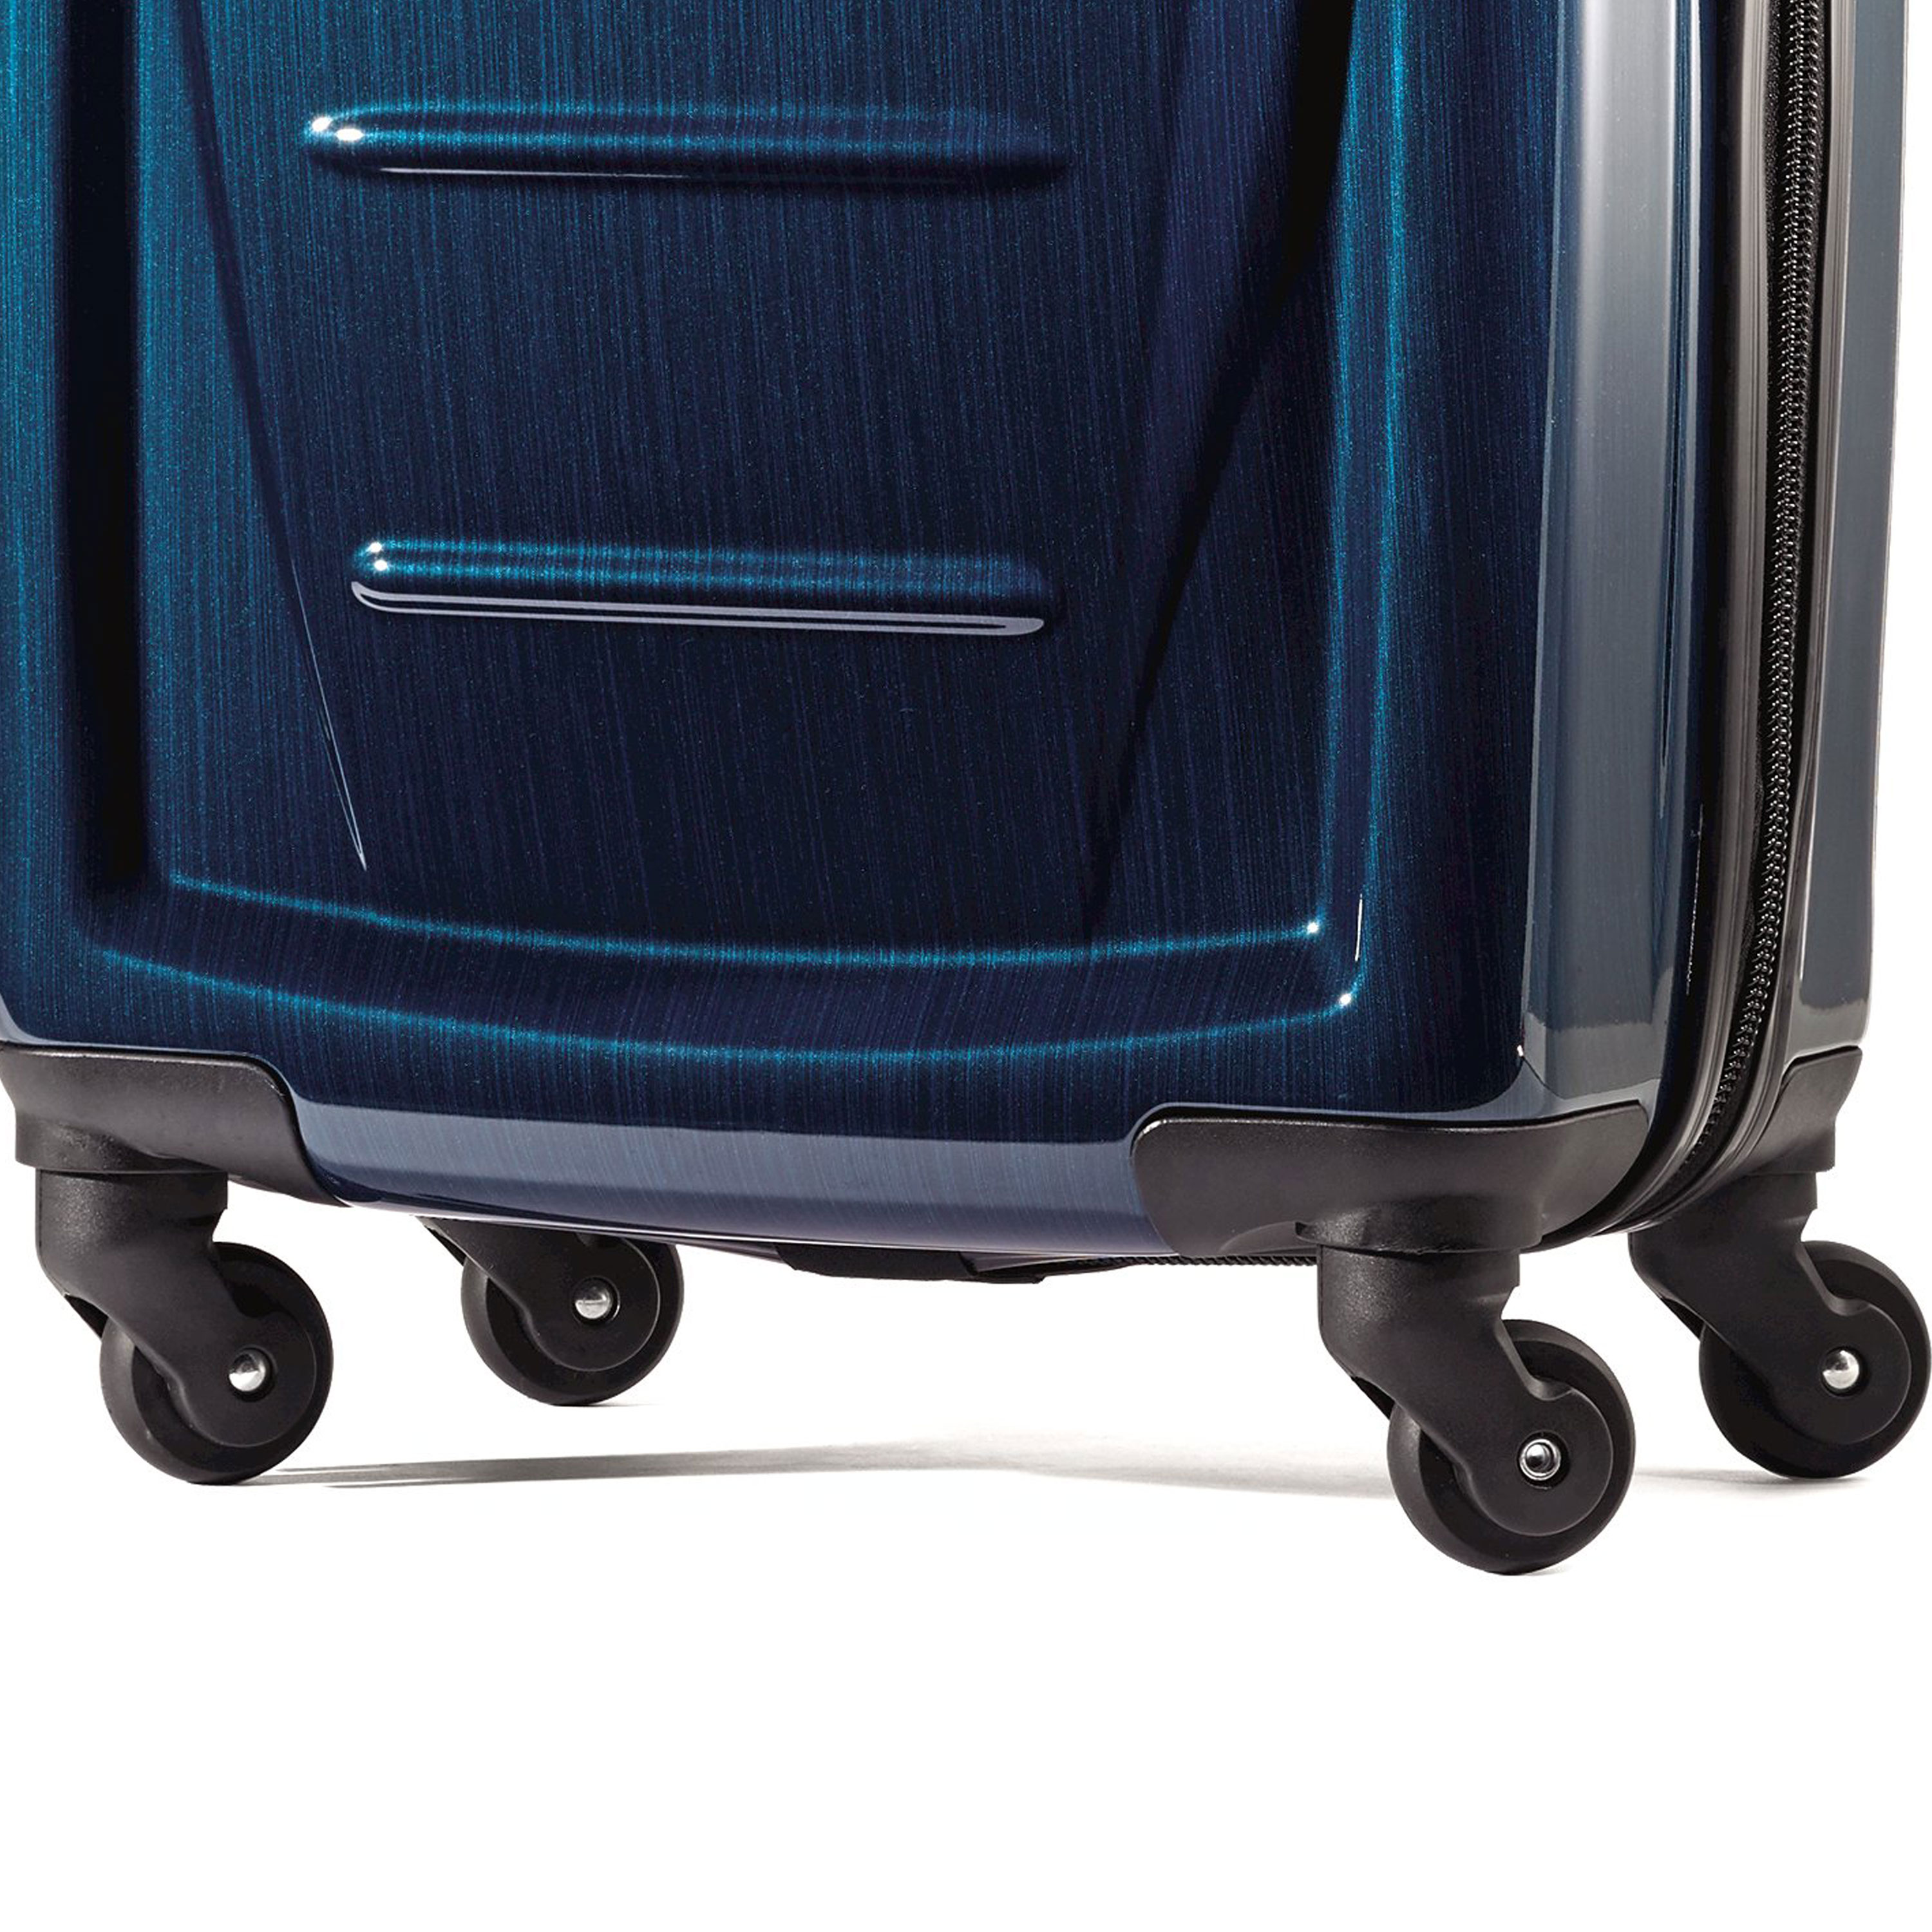 Samsonite-Winfield-2-Fashion-Spinner-Luggage thumbnail 24